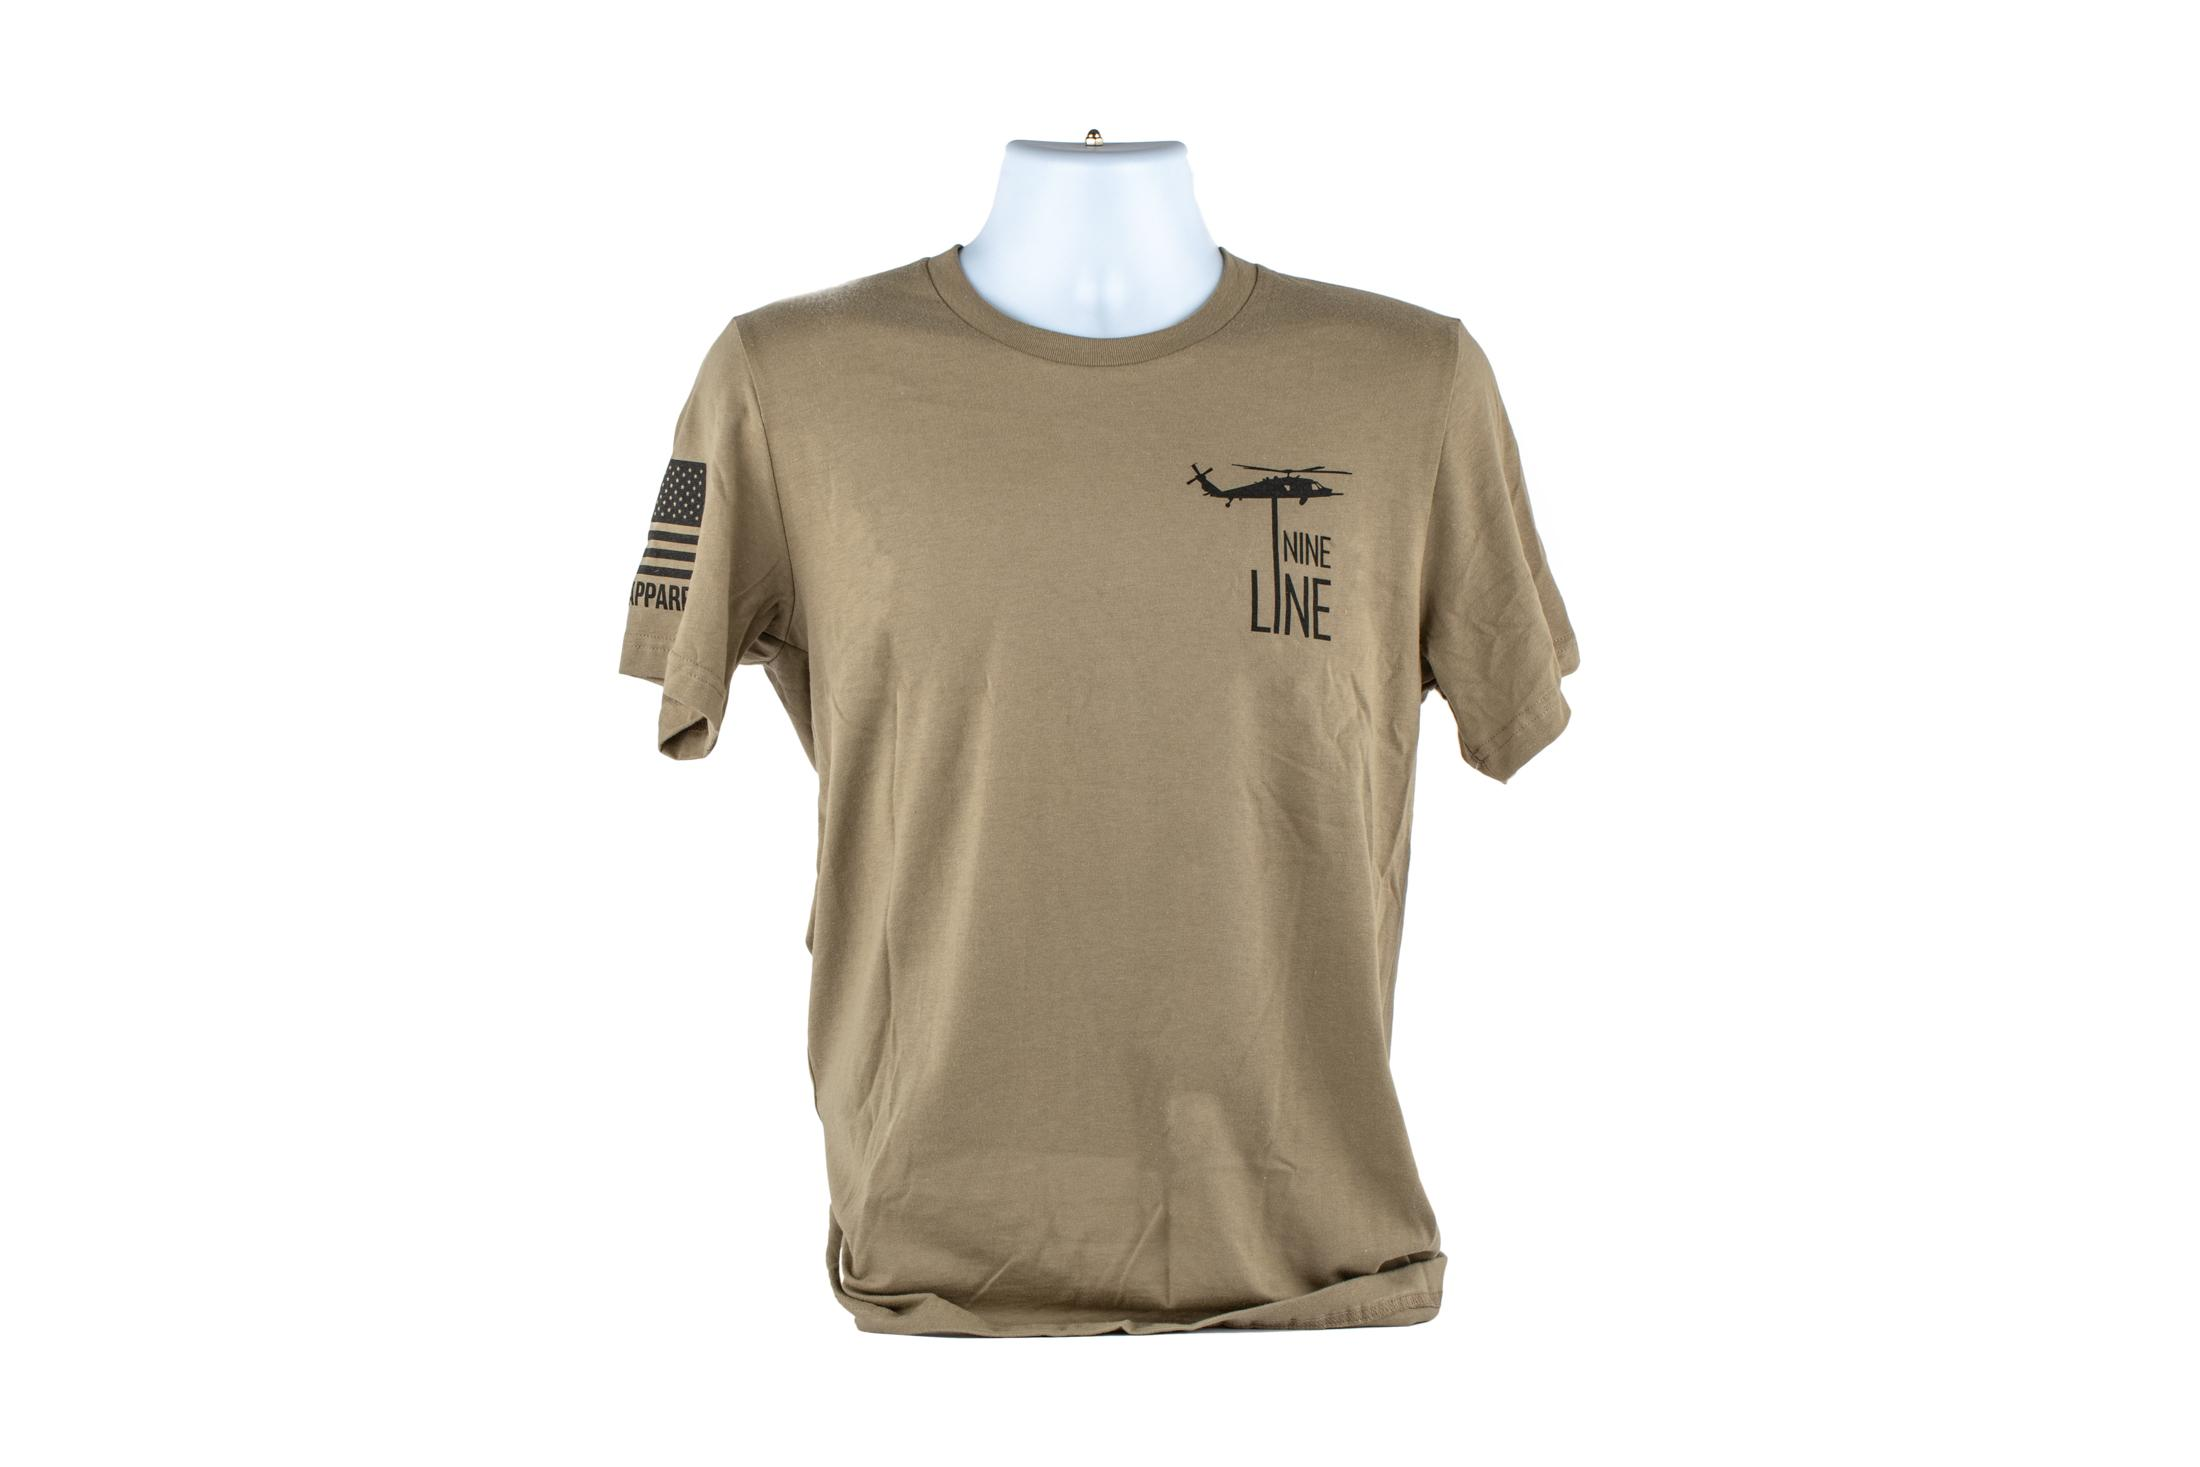 Nine Line Apparel America T-Shirt - Coyote - 2XL